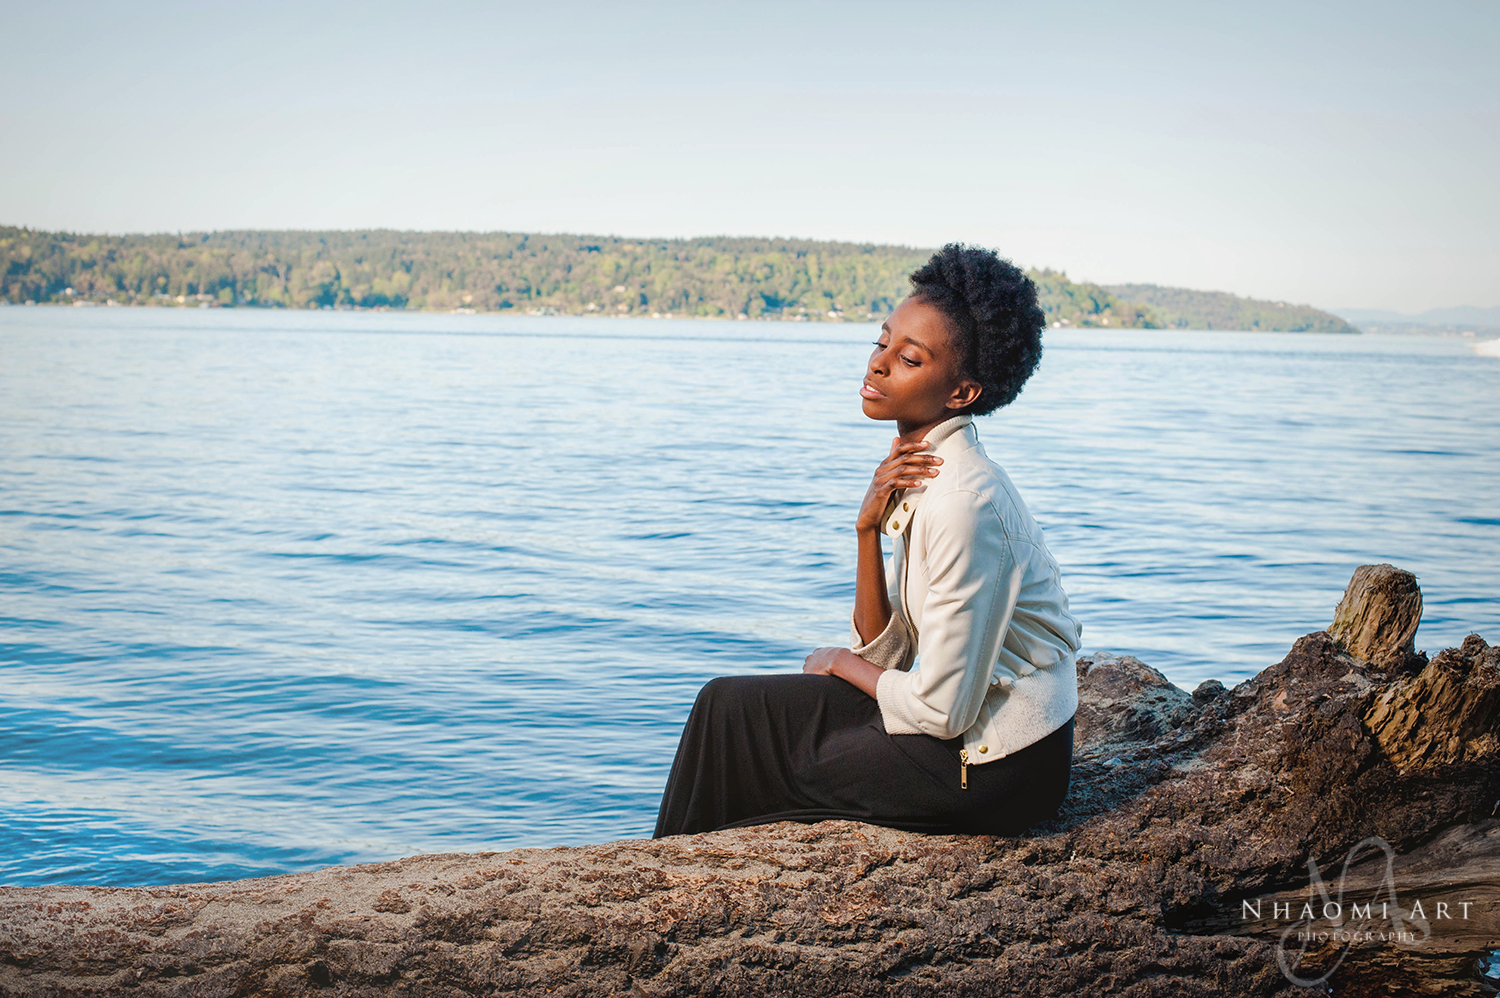 portrait photography senior tacoma seattle point defiance park nhaomi art naomi owen's beach